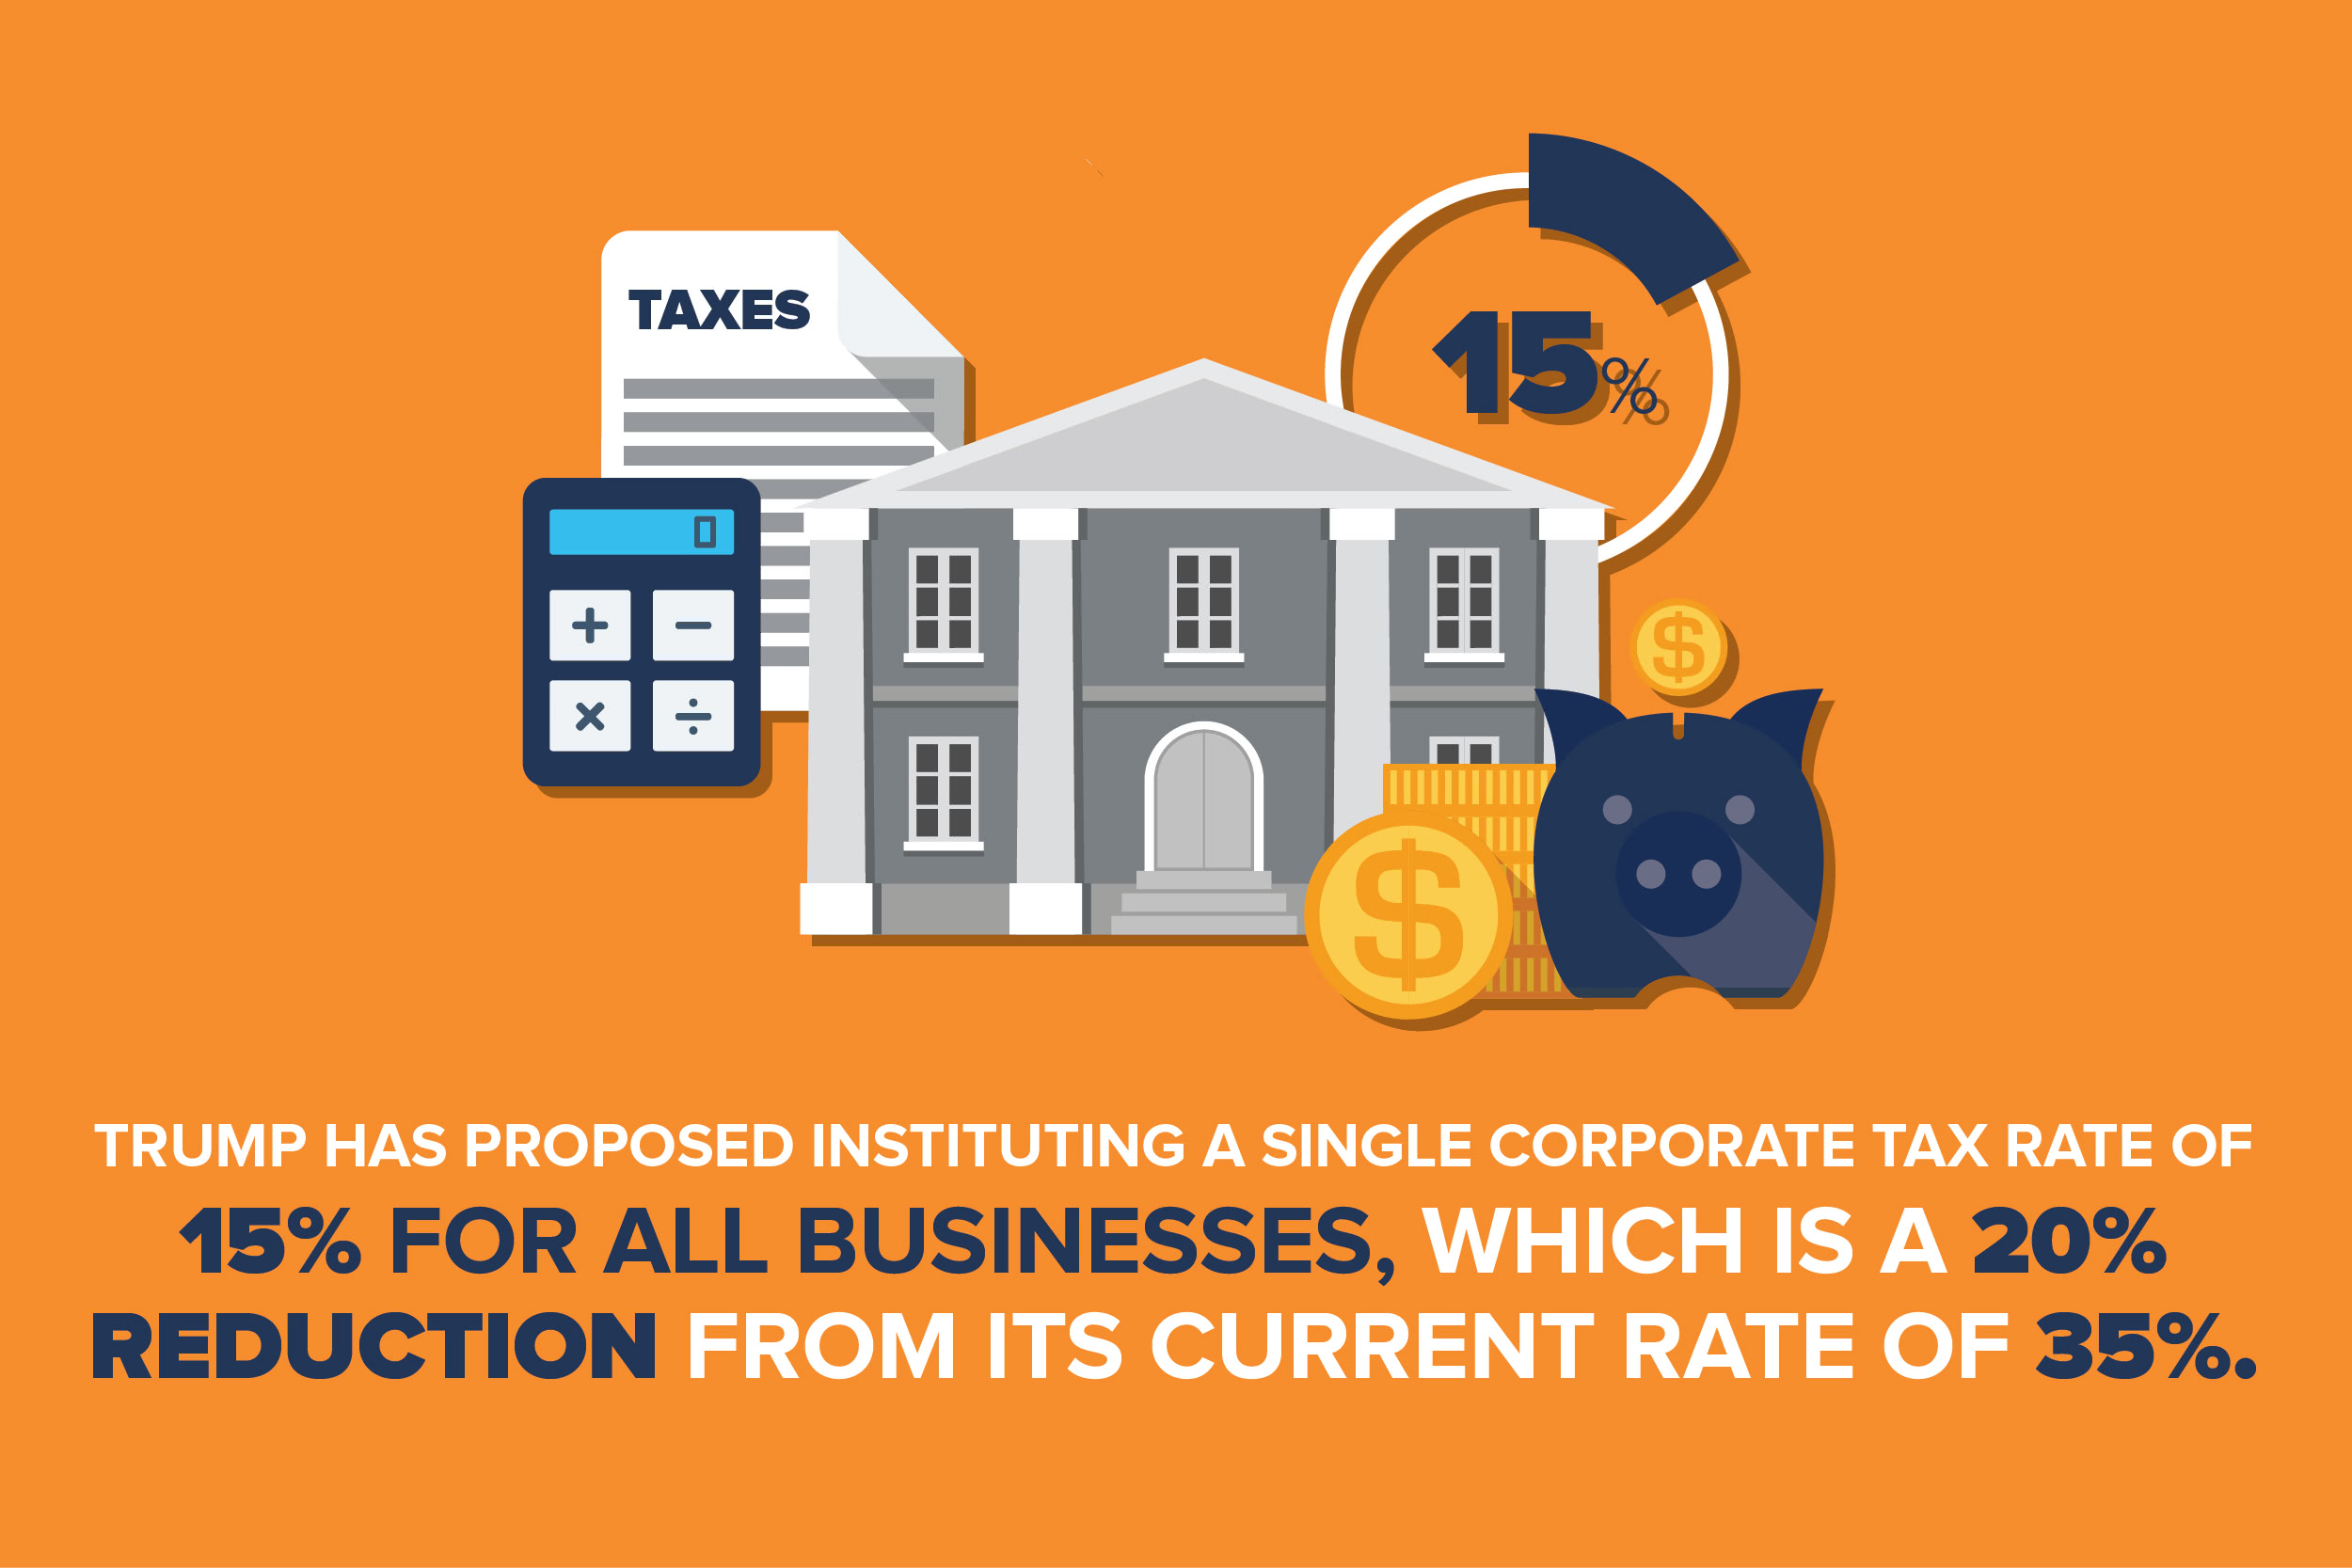 Trump small business tax rate reduction